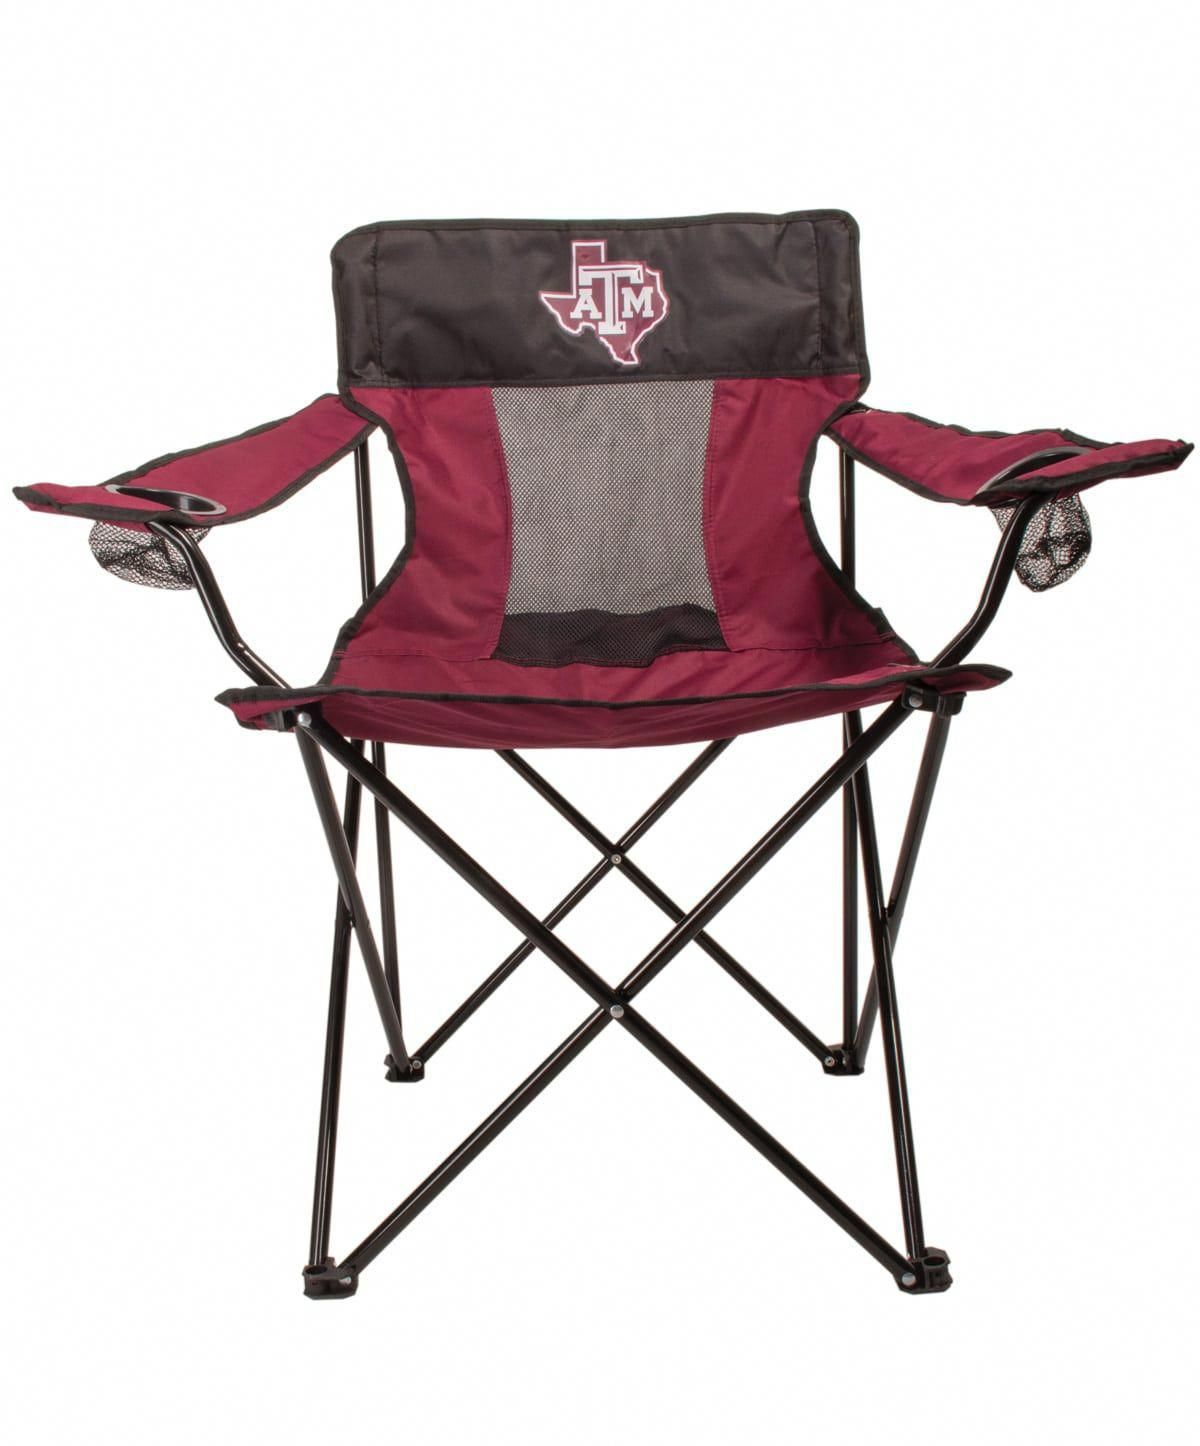 13 Awesome Camping Chair Eddie Bauer Campingfun Campingchairs